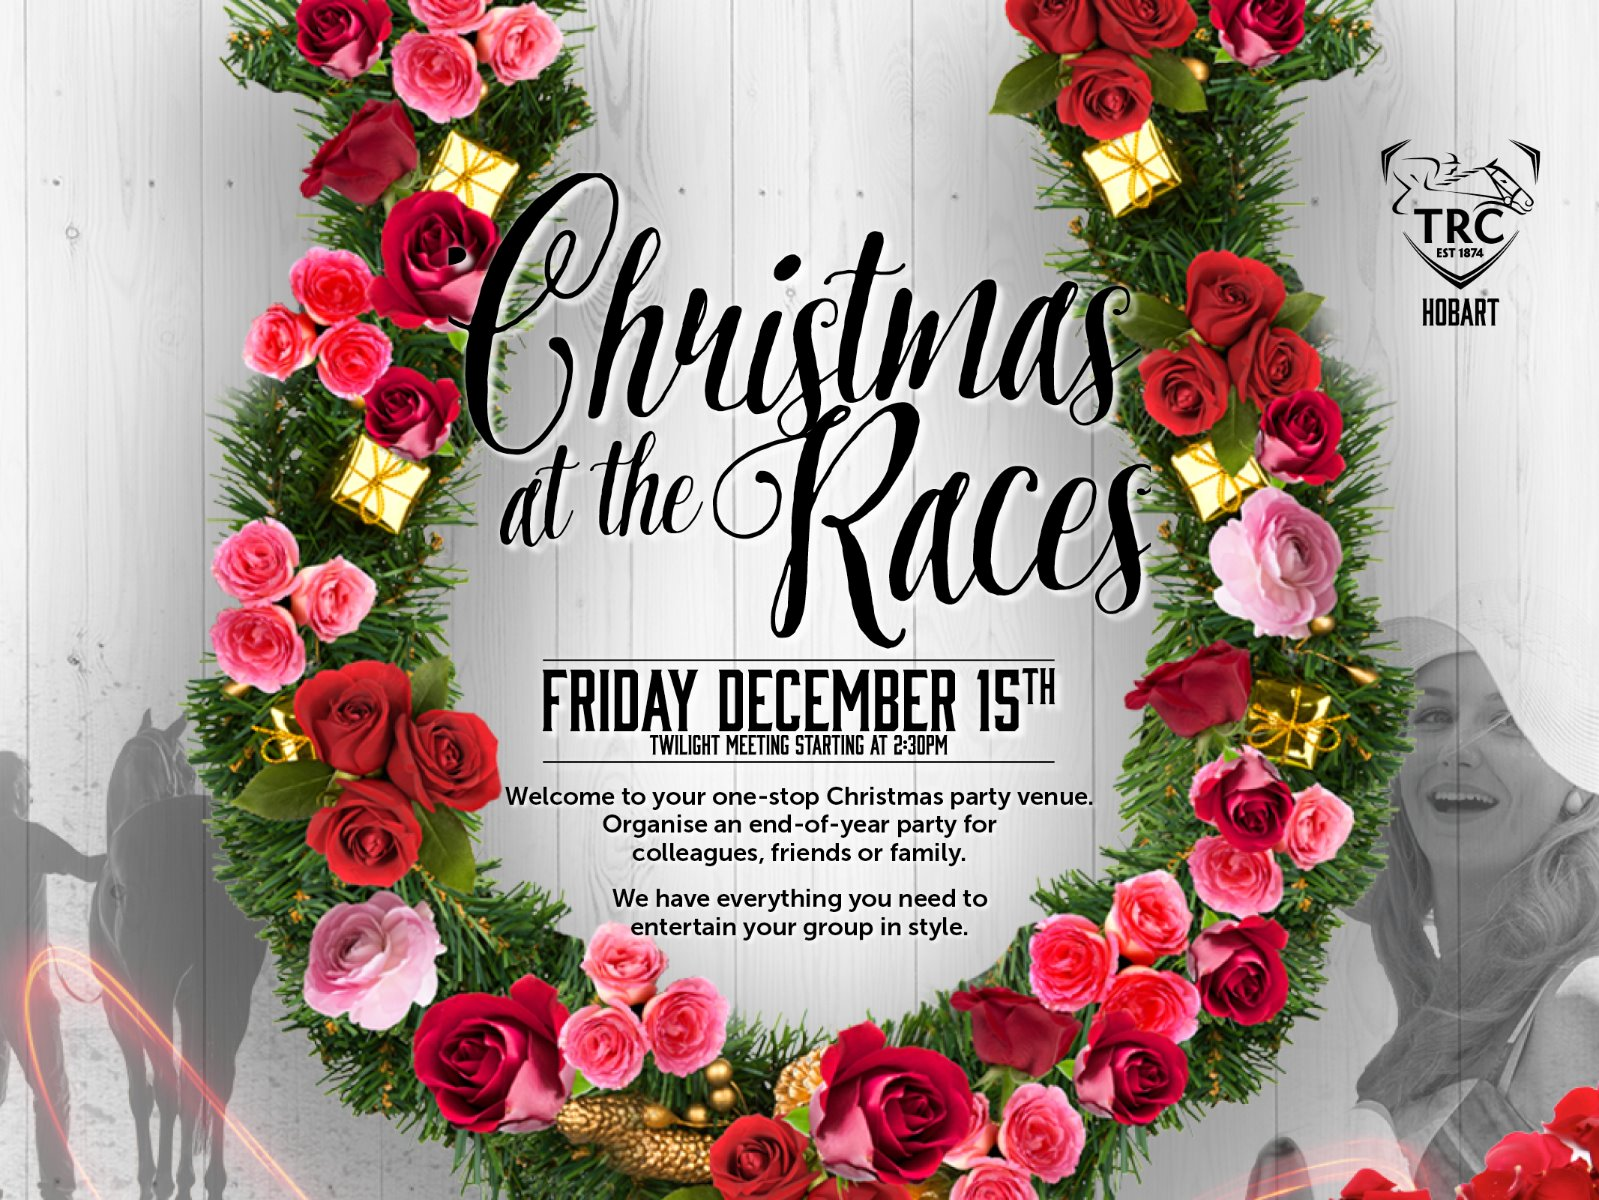 Christmas at the Races - Hobart Thoroughbred Racing